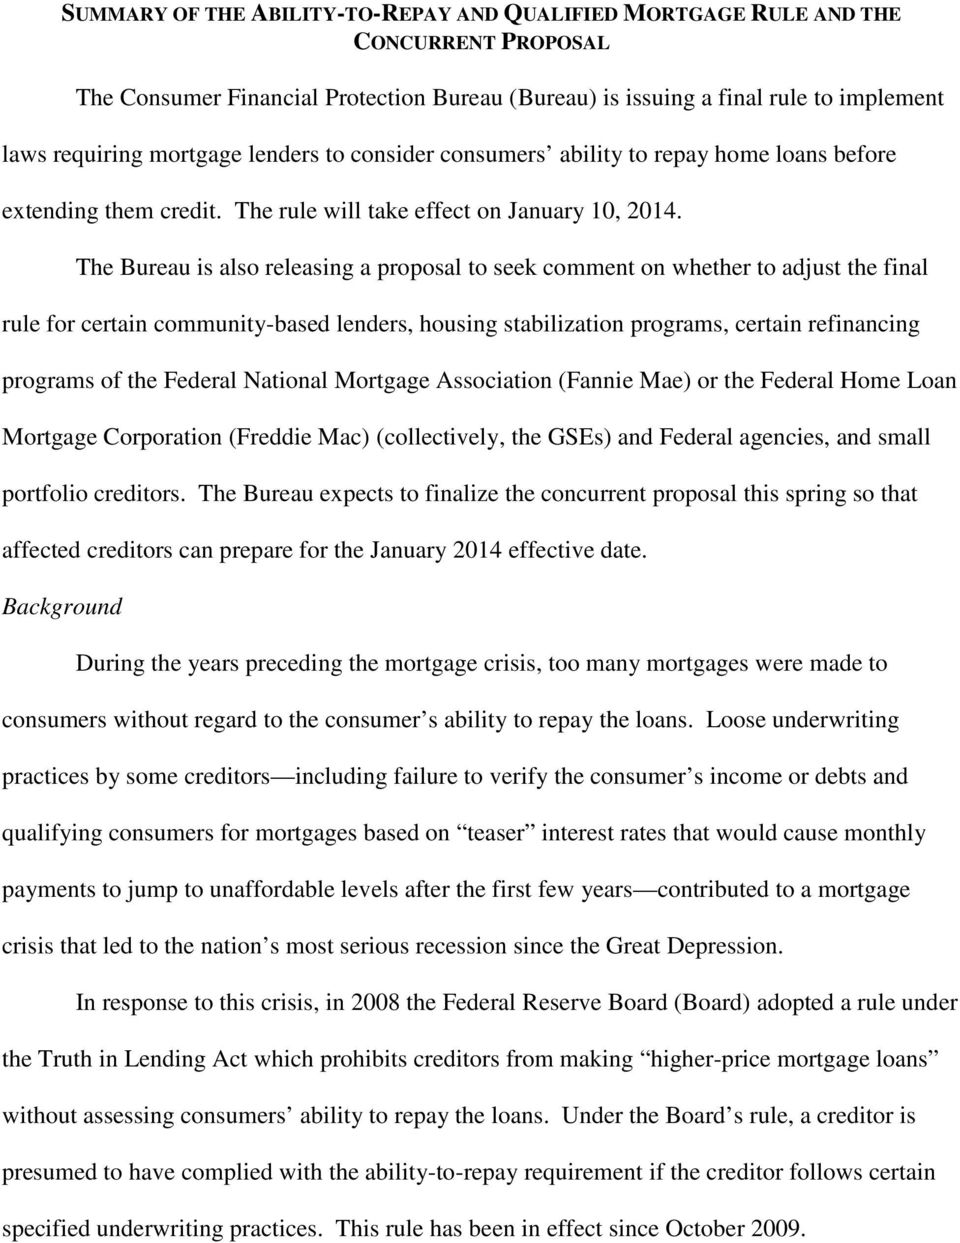 The Bureau is also releasing a proposal to seek comment on whether to adjust the final rule for certain community-based lenders, housing stabilization programs, certain refinancing programs of the